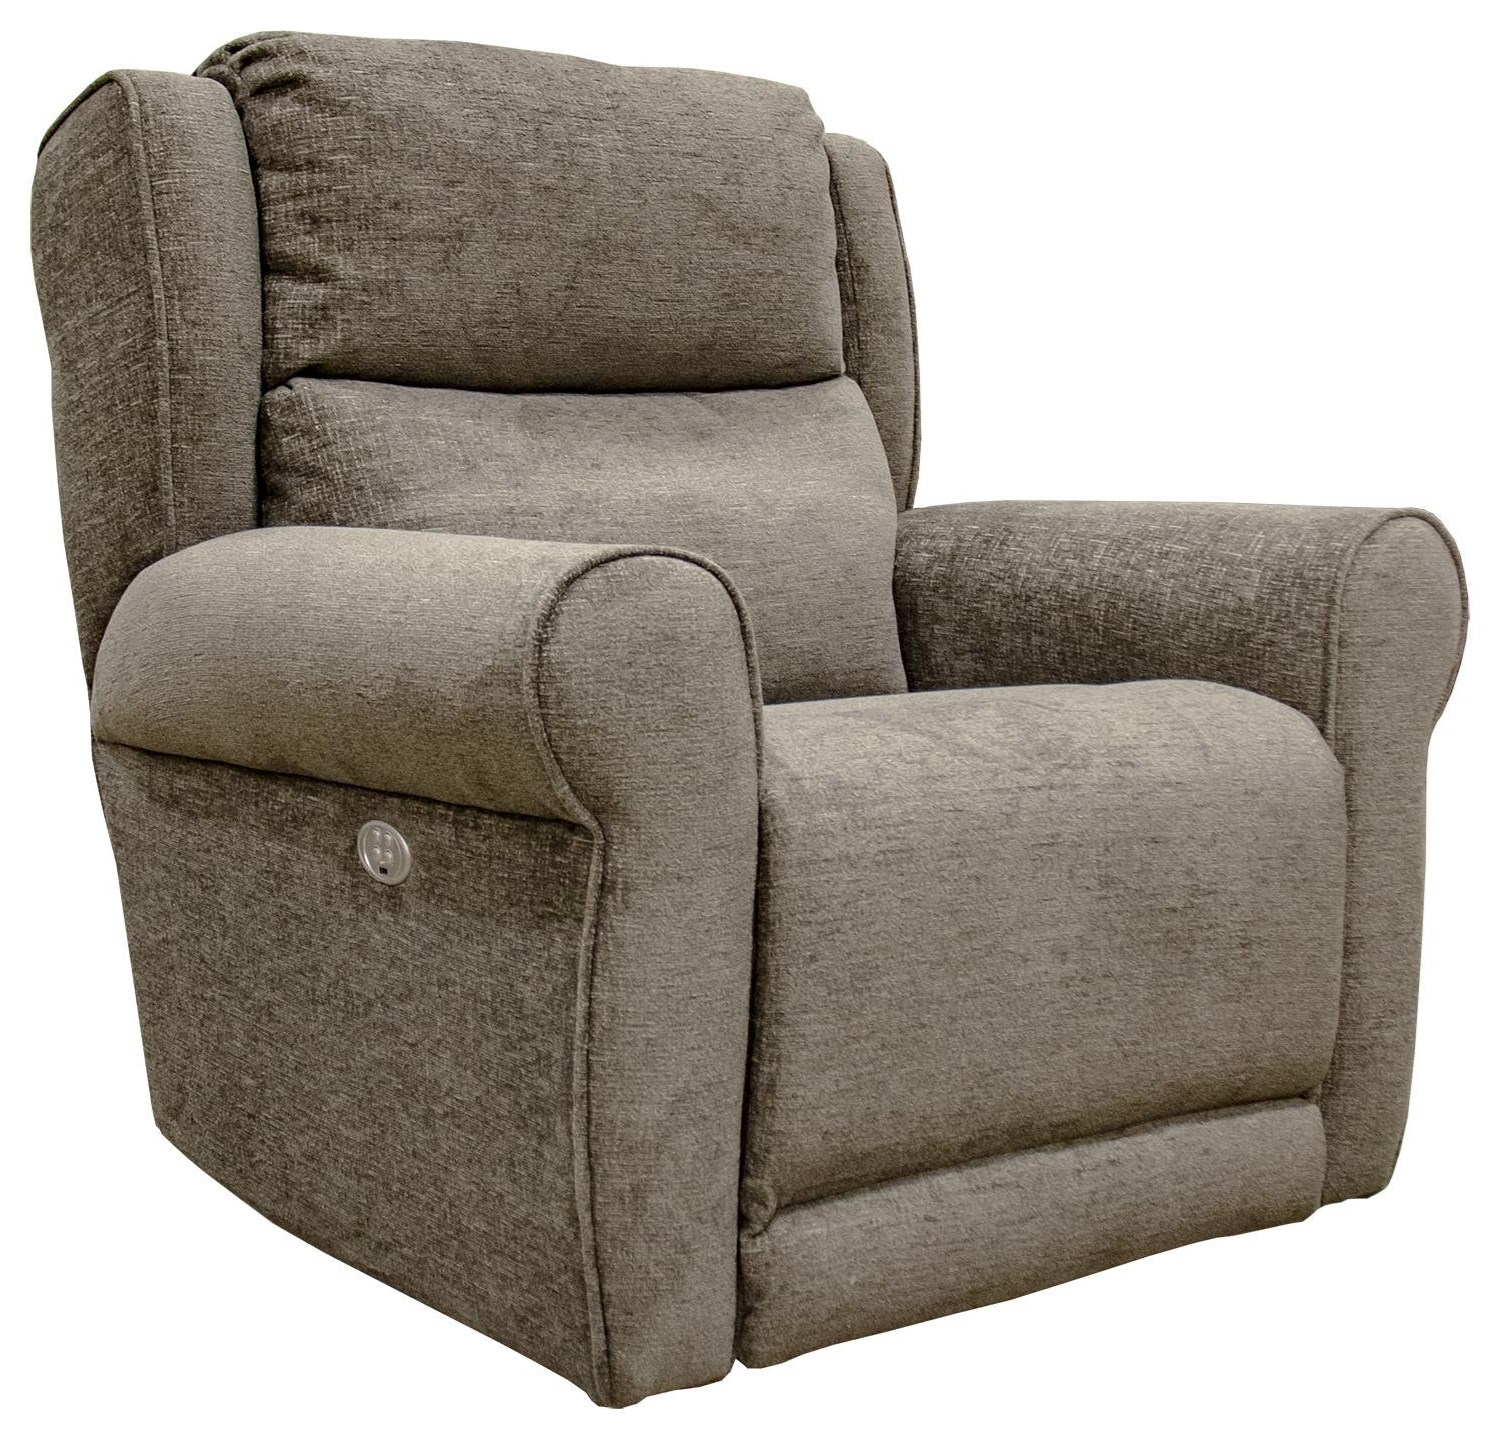 Mink Power Big Man's Recliner